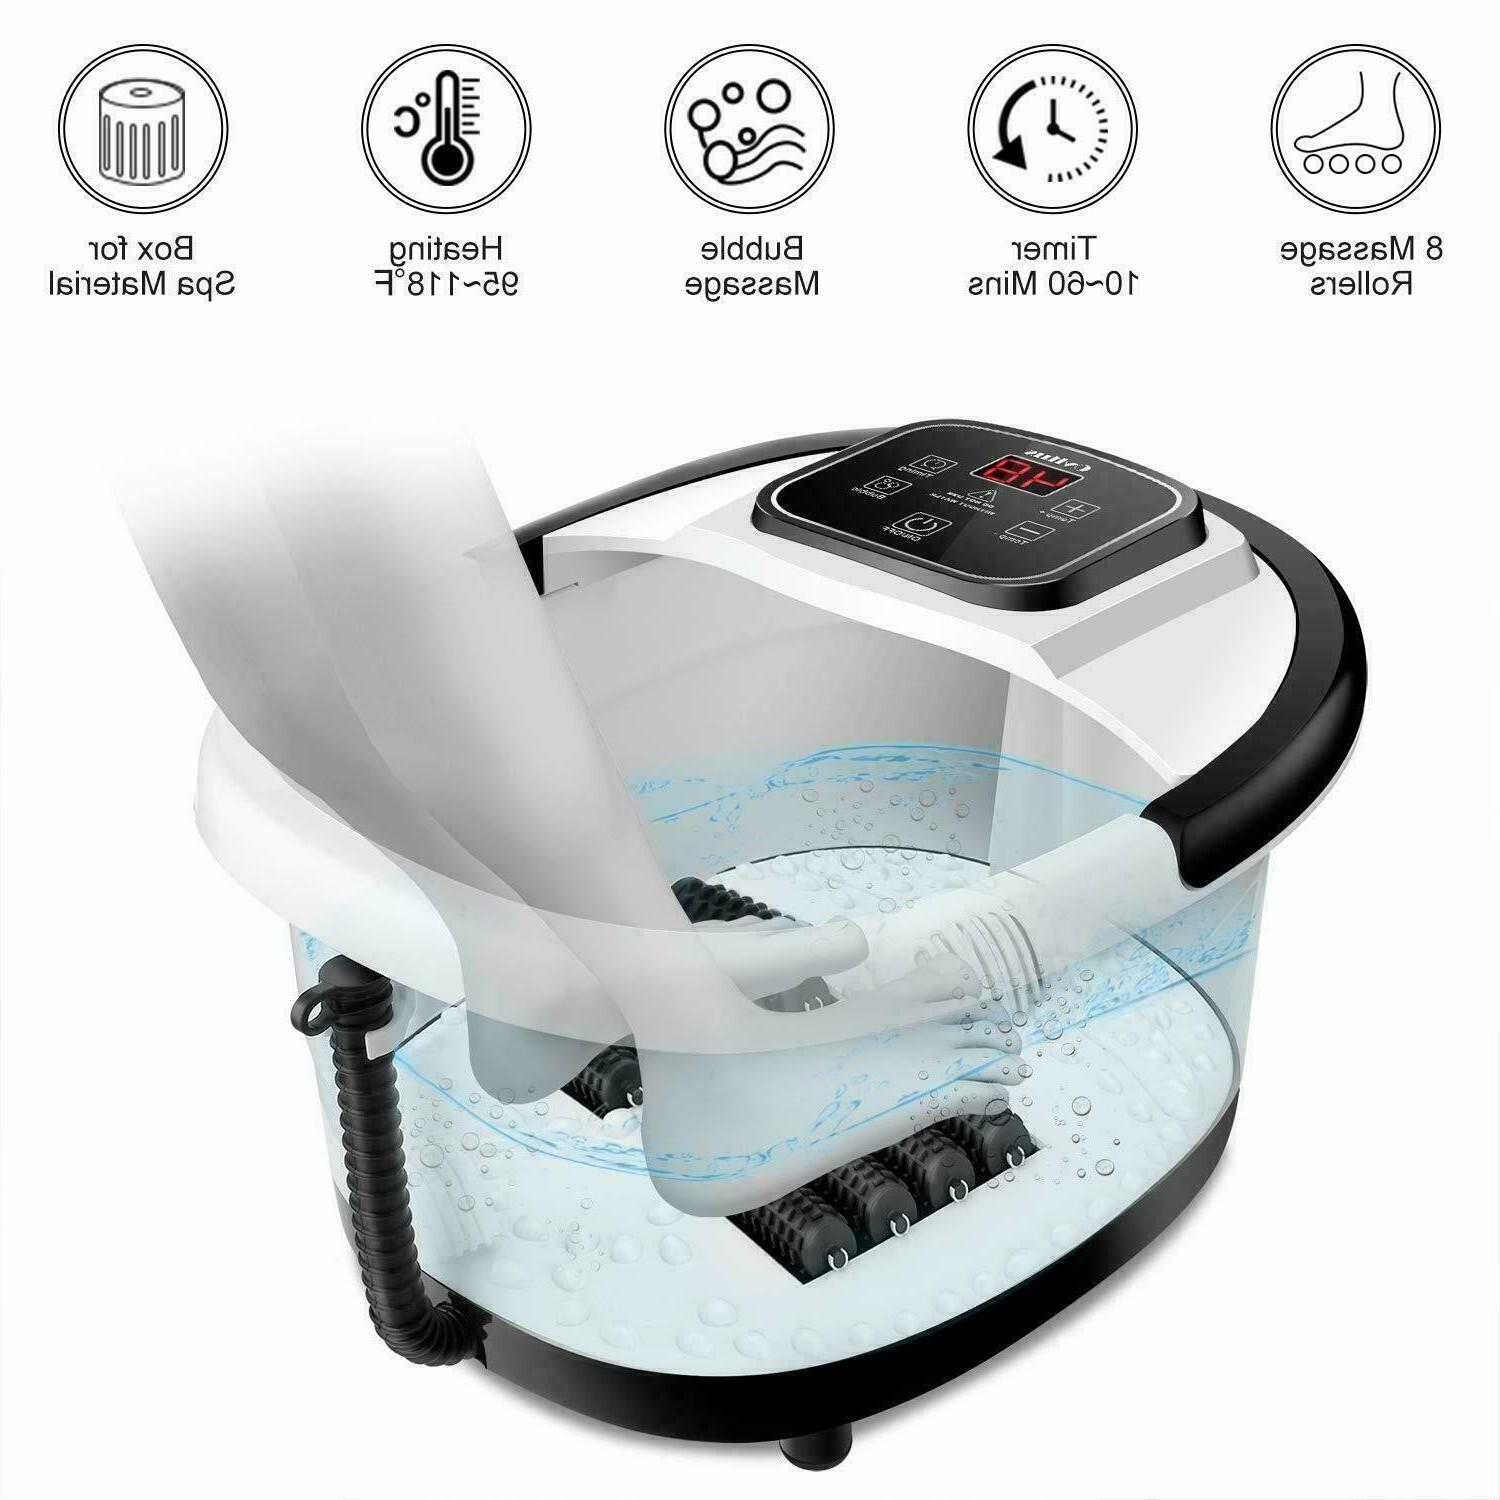 Foot Spa with Bubbles Vibration Massage Rollers Timer